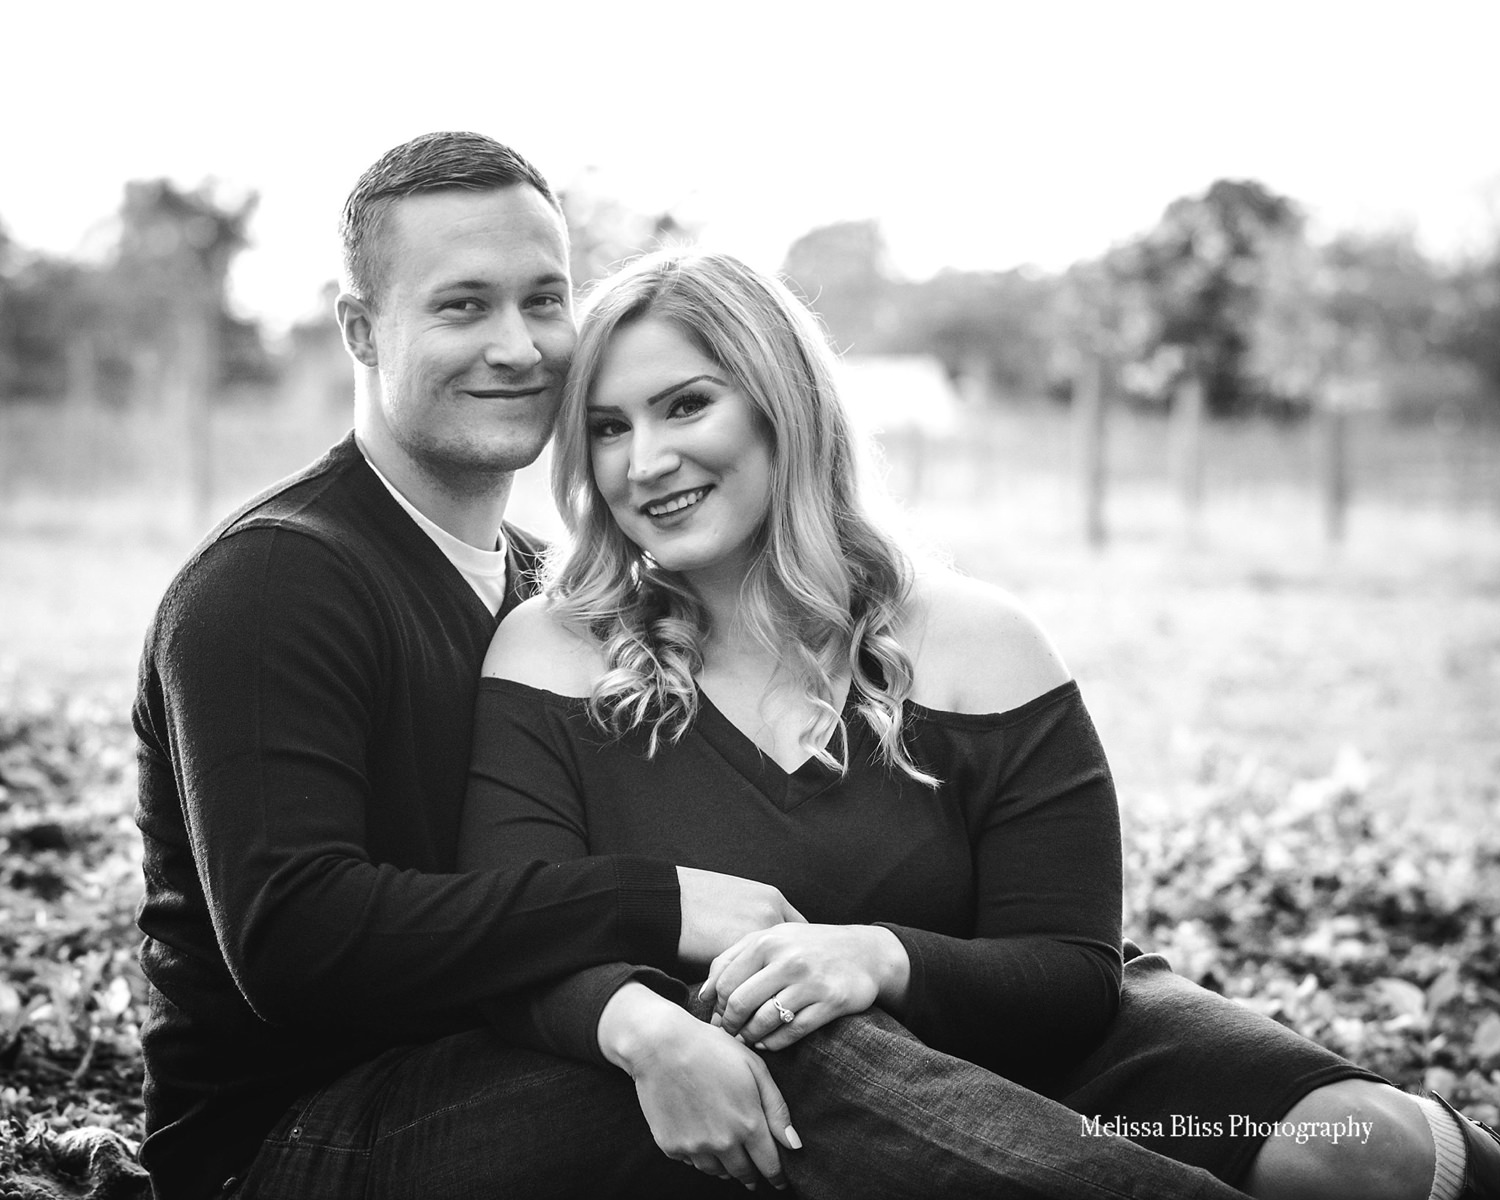 beautiful-romantic-rustic-engagement-session-photos-by-melissa-bliss-photography-norfolk-wedding-photographer.jpg